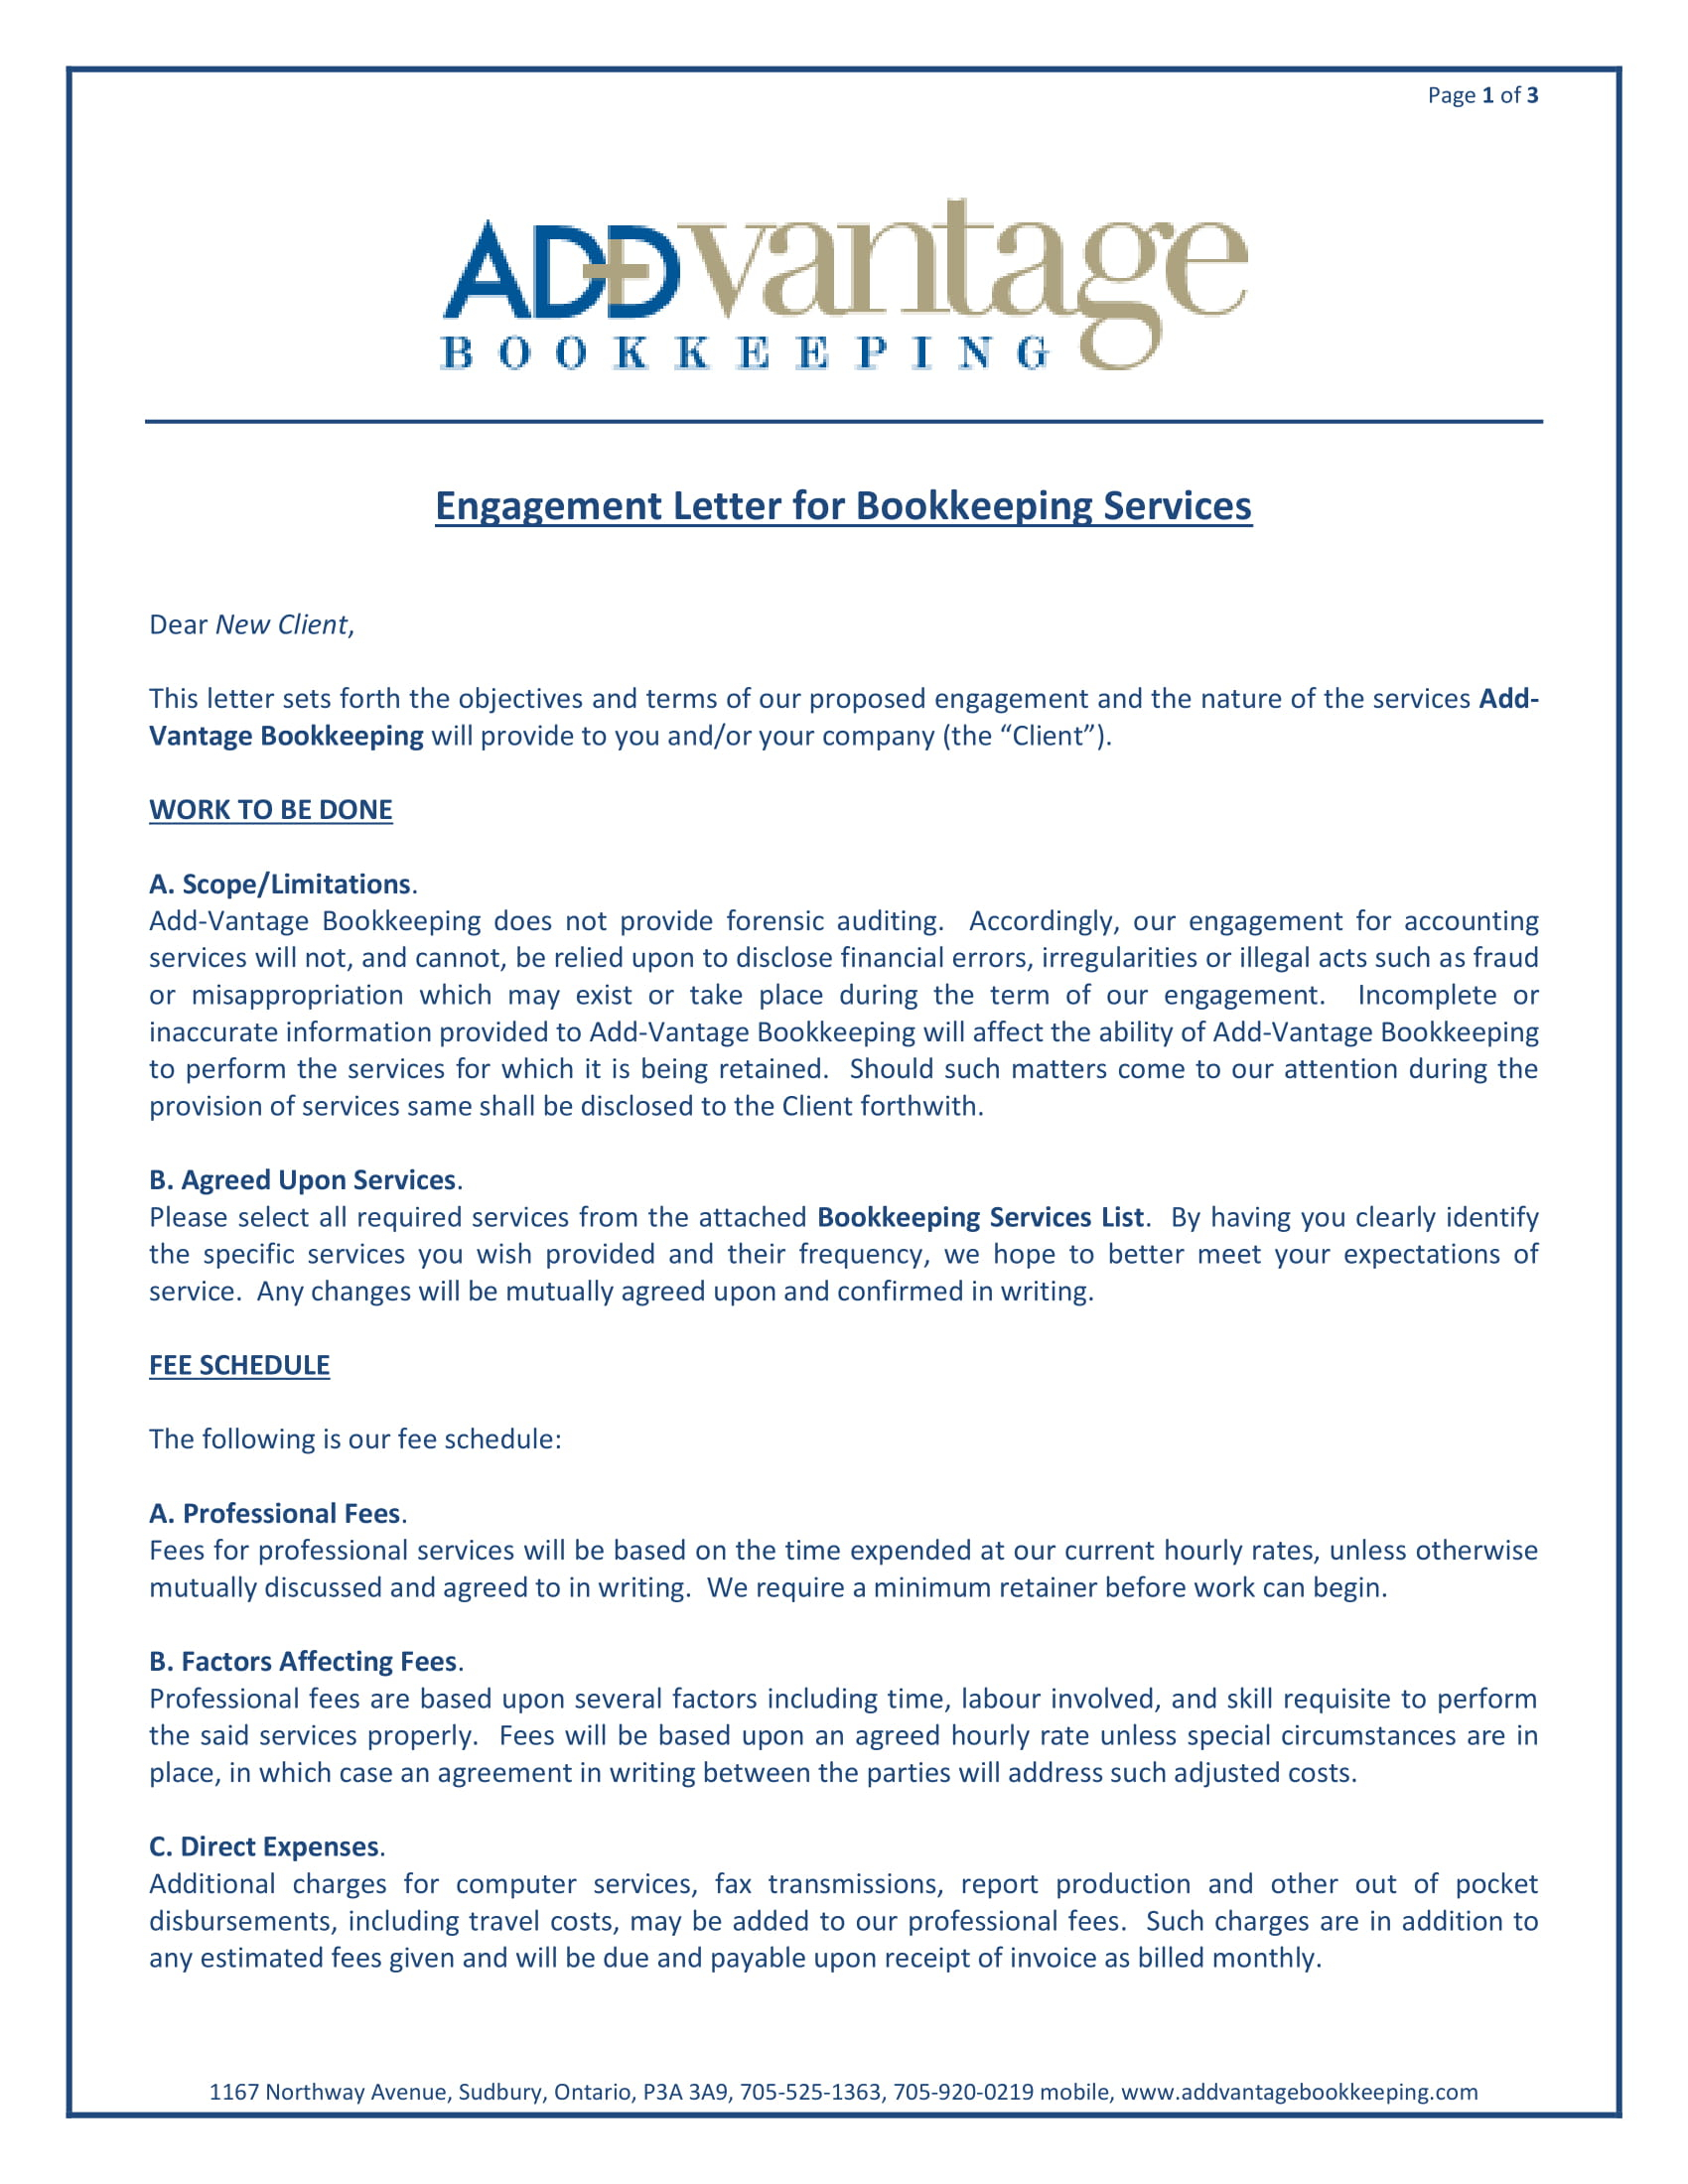 10  Bookkeeper Confidentiality Agreement Examples   Doc, Pdf With Bookkeeping Engagement Letter Example